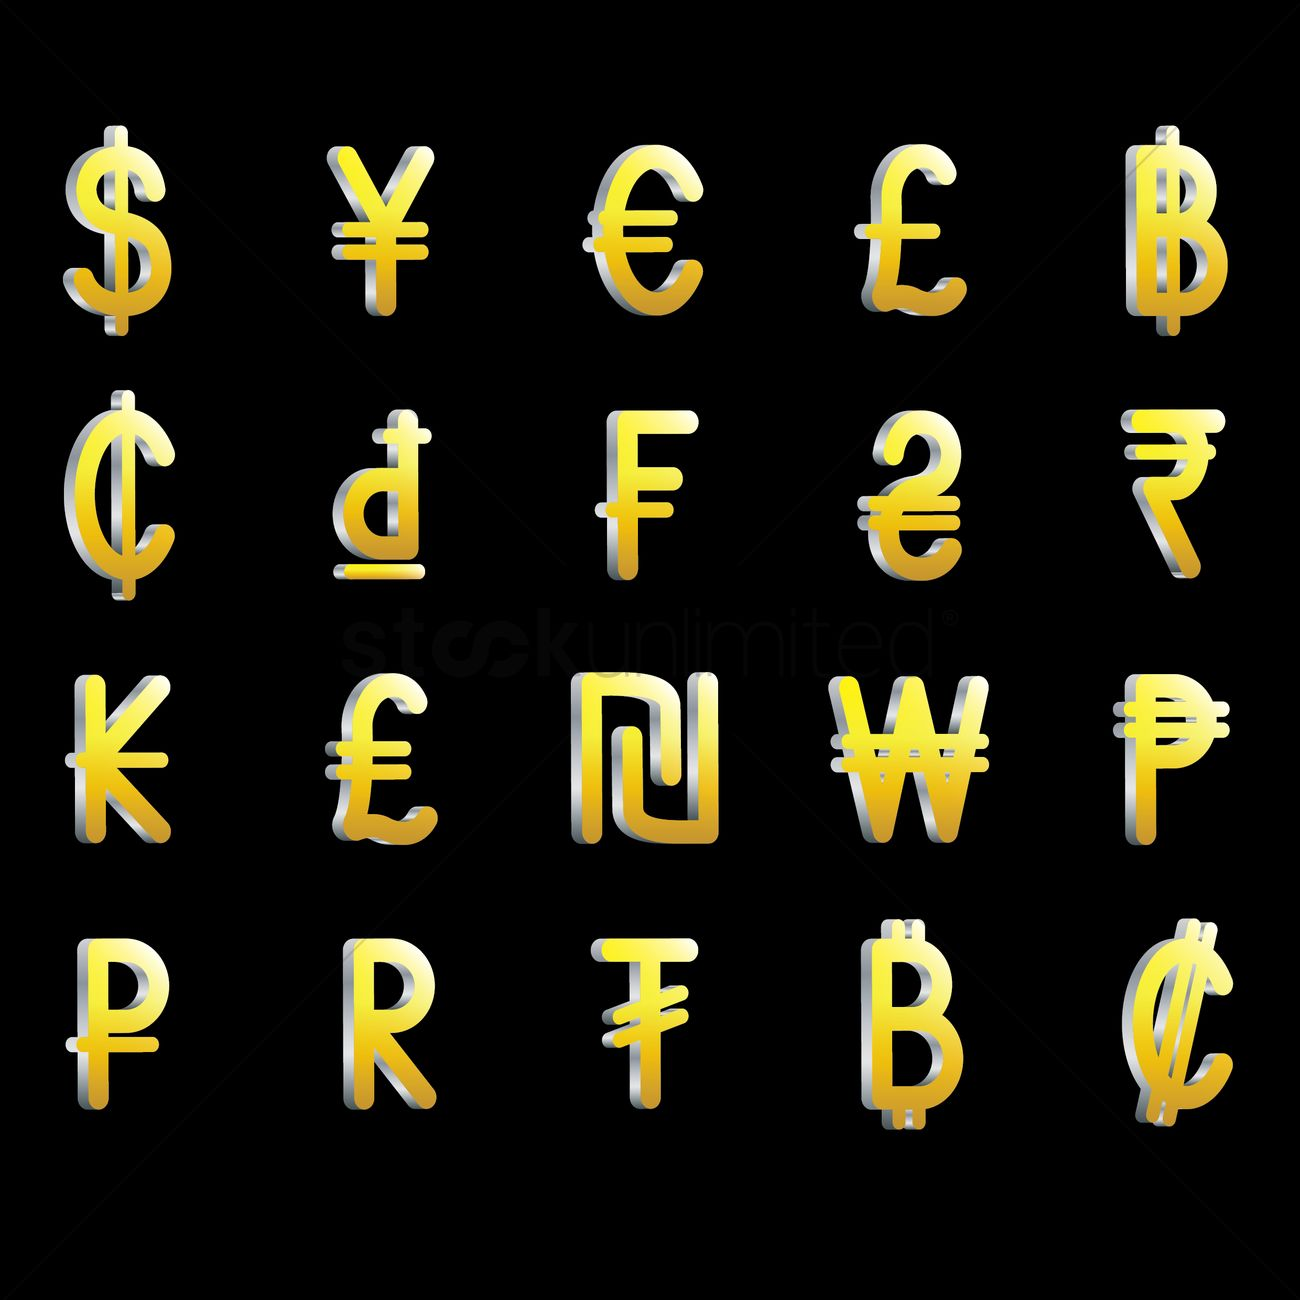 Set of currency symbols vector image 1821547 stockunlimited set of currency icons buycottarizona Image collections